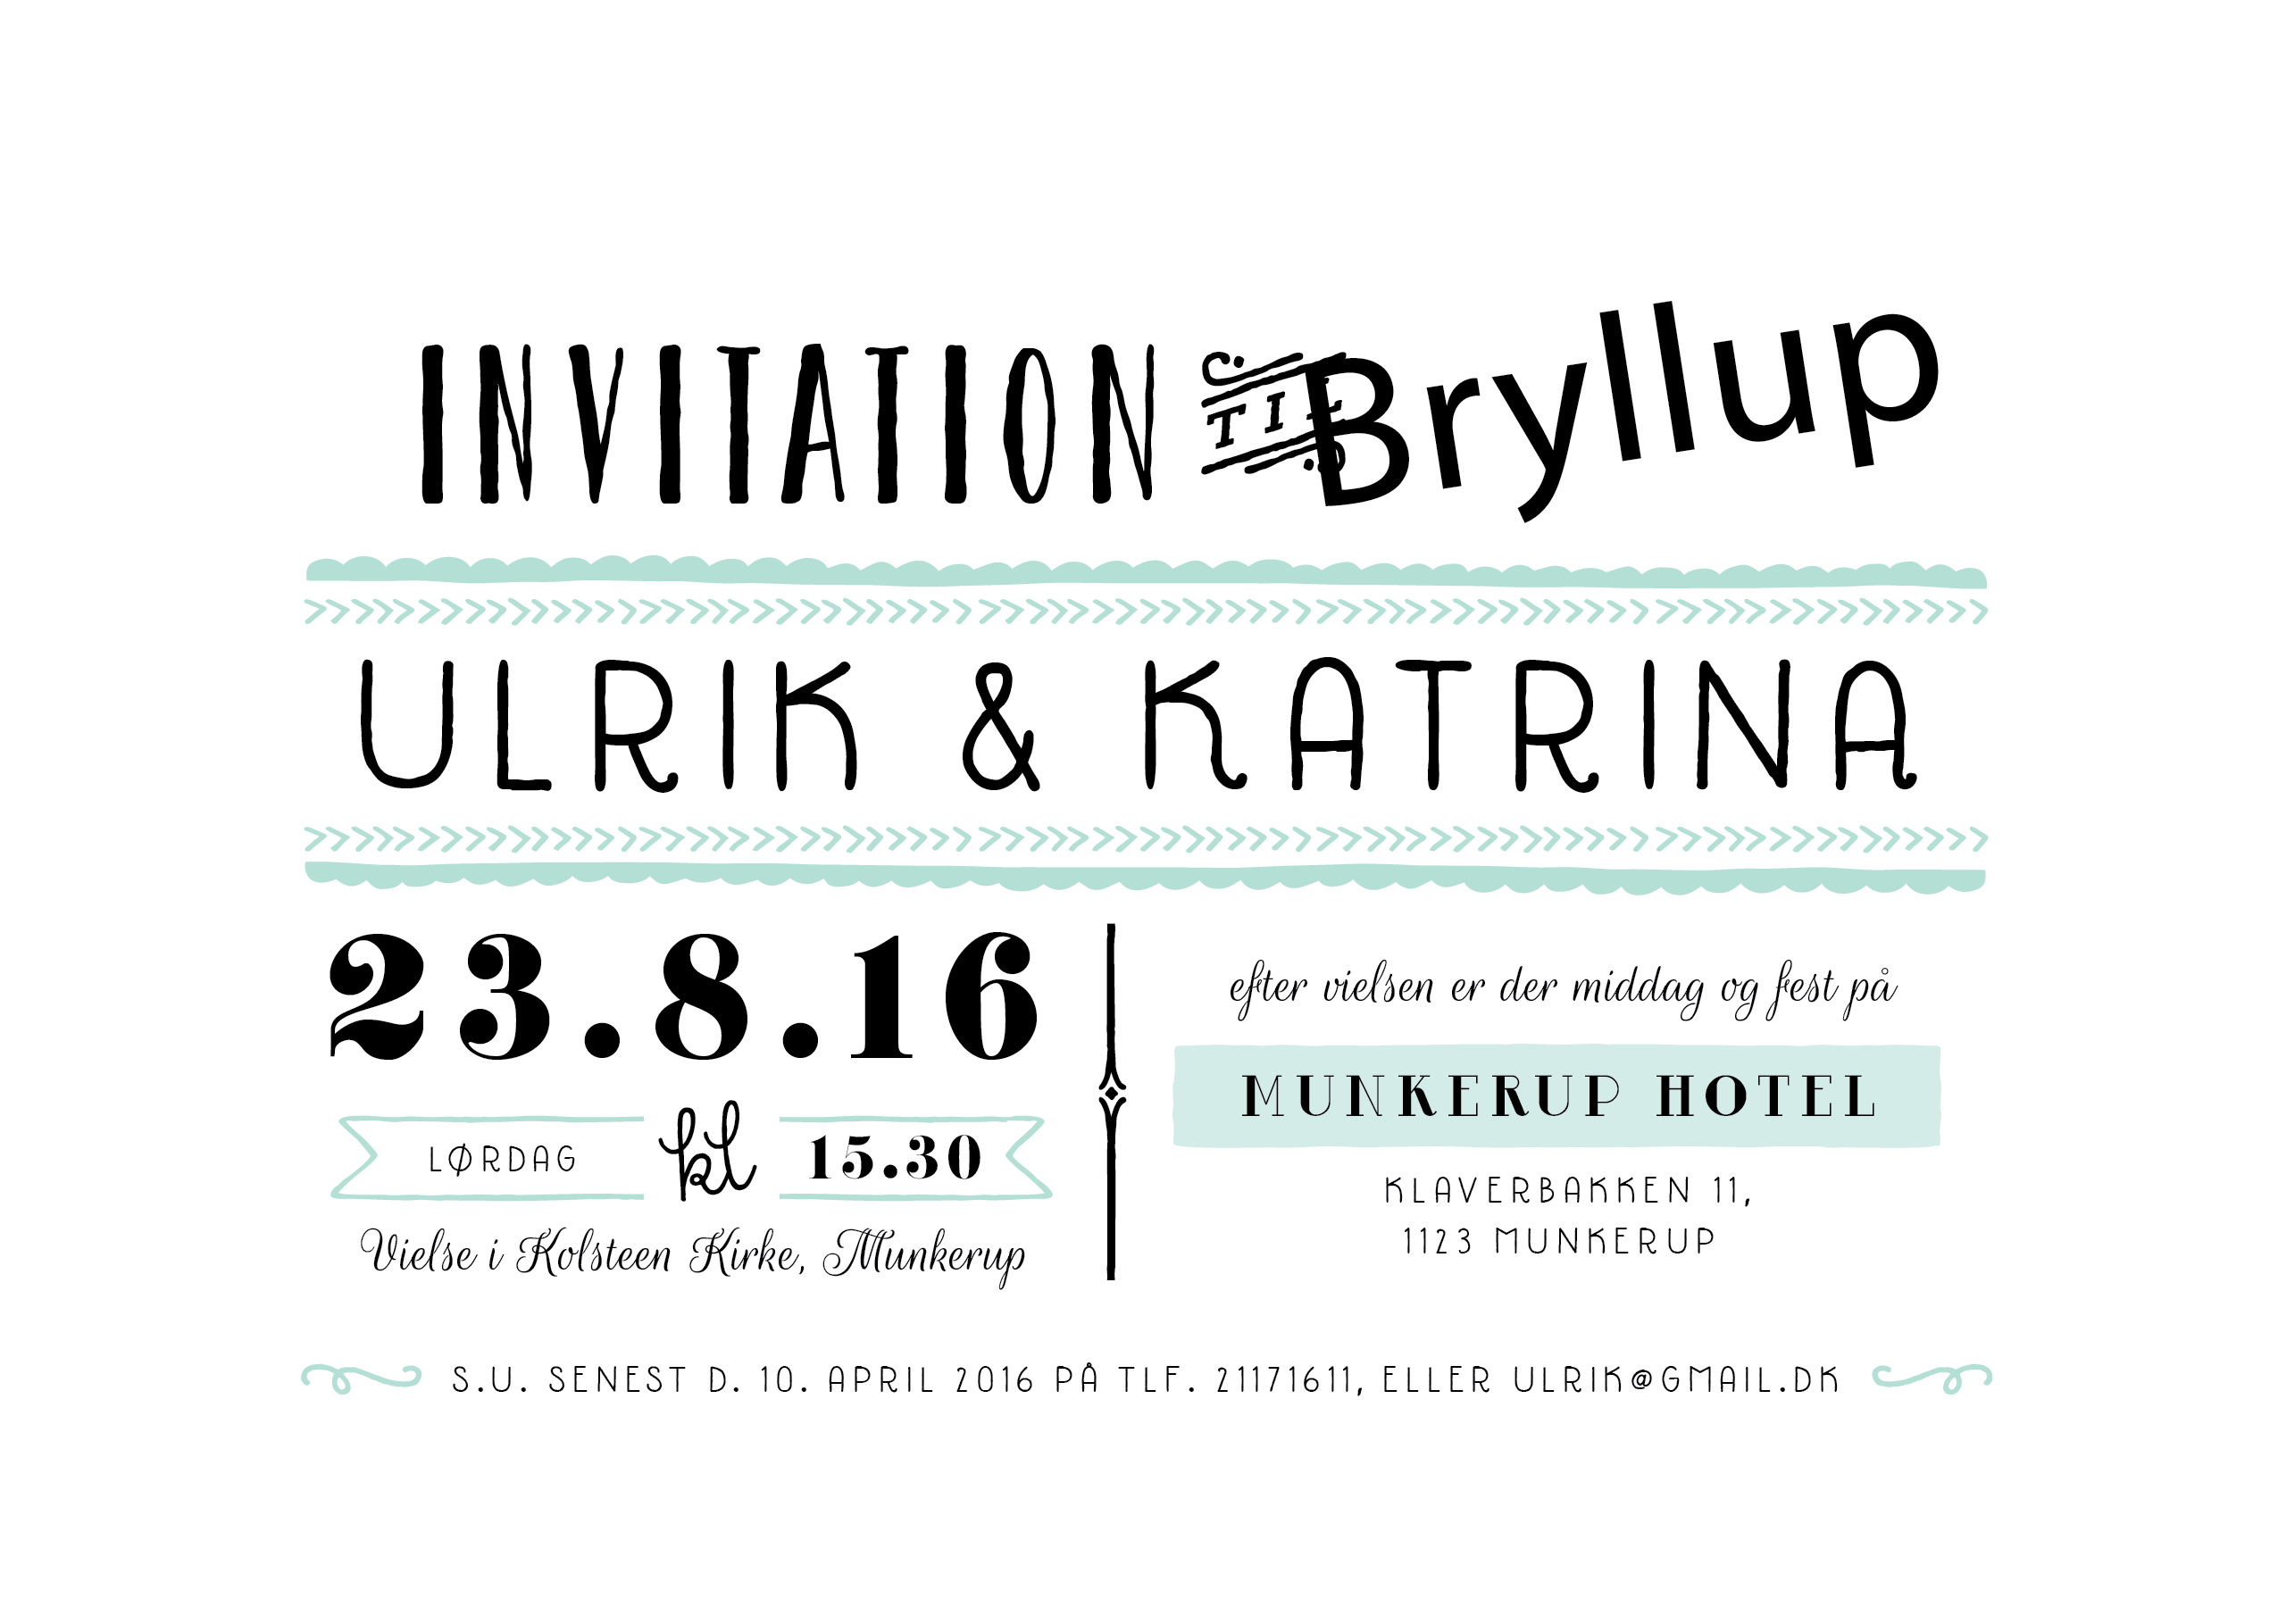 /site/resources/images/card-photos/card-thumbnails/Ulrik & Katrina/1496061005_front_thumb.png